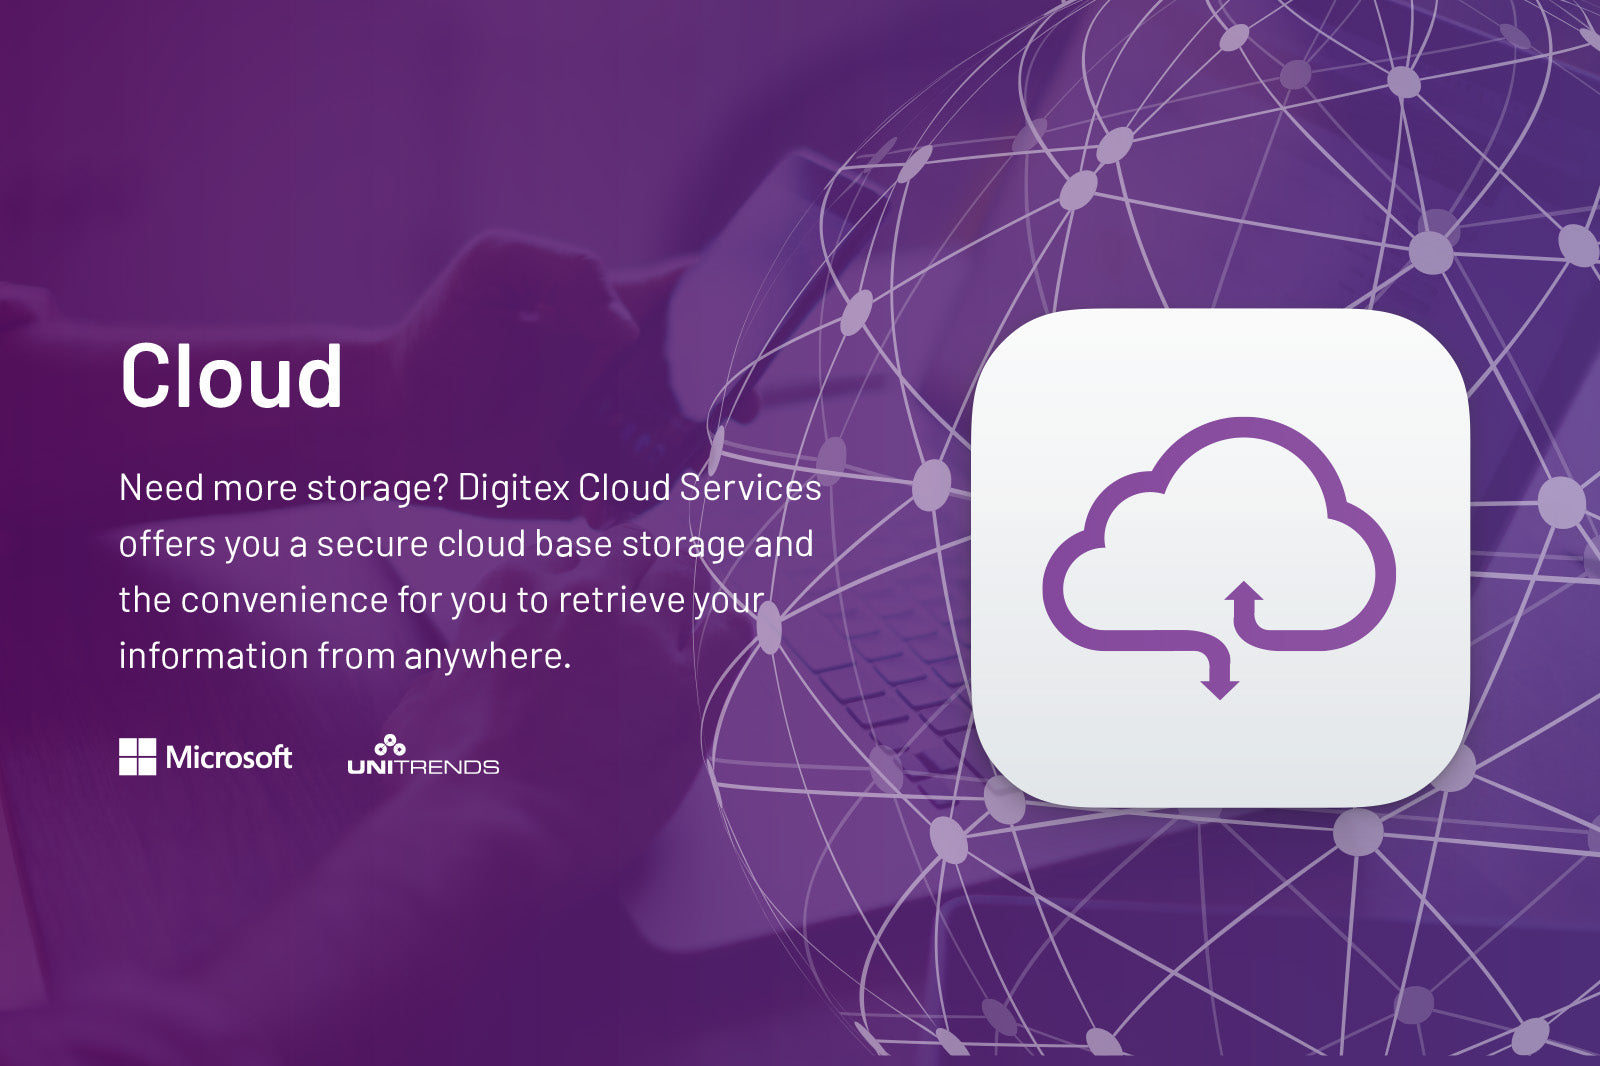 Cloud. Need more storage? Digitex Cloud Services offers you a secure cloud base storage and the convenience for you to retrieve your information from anywhere.